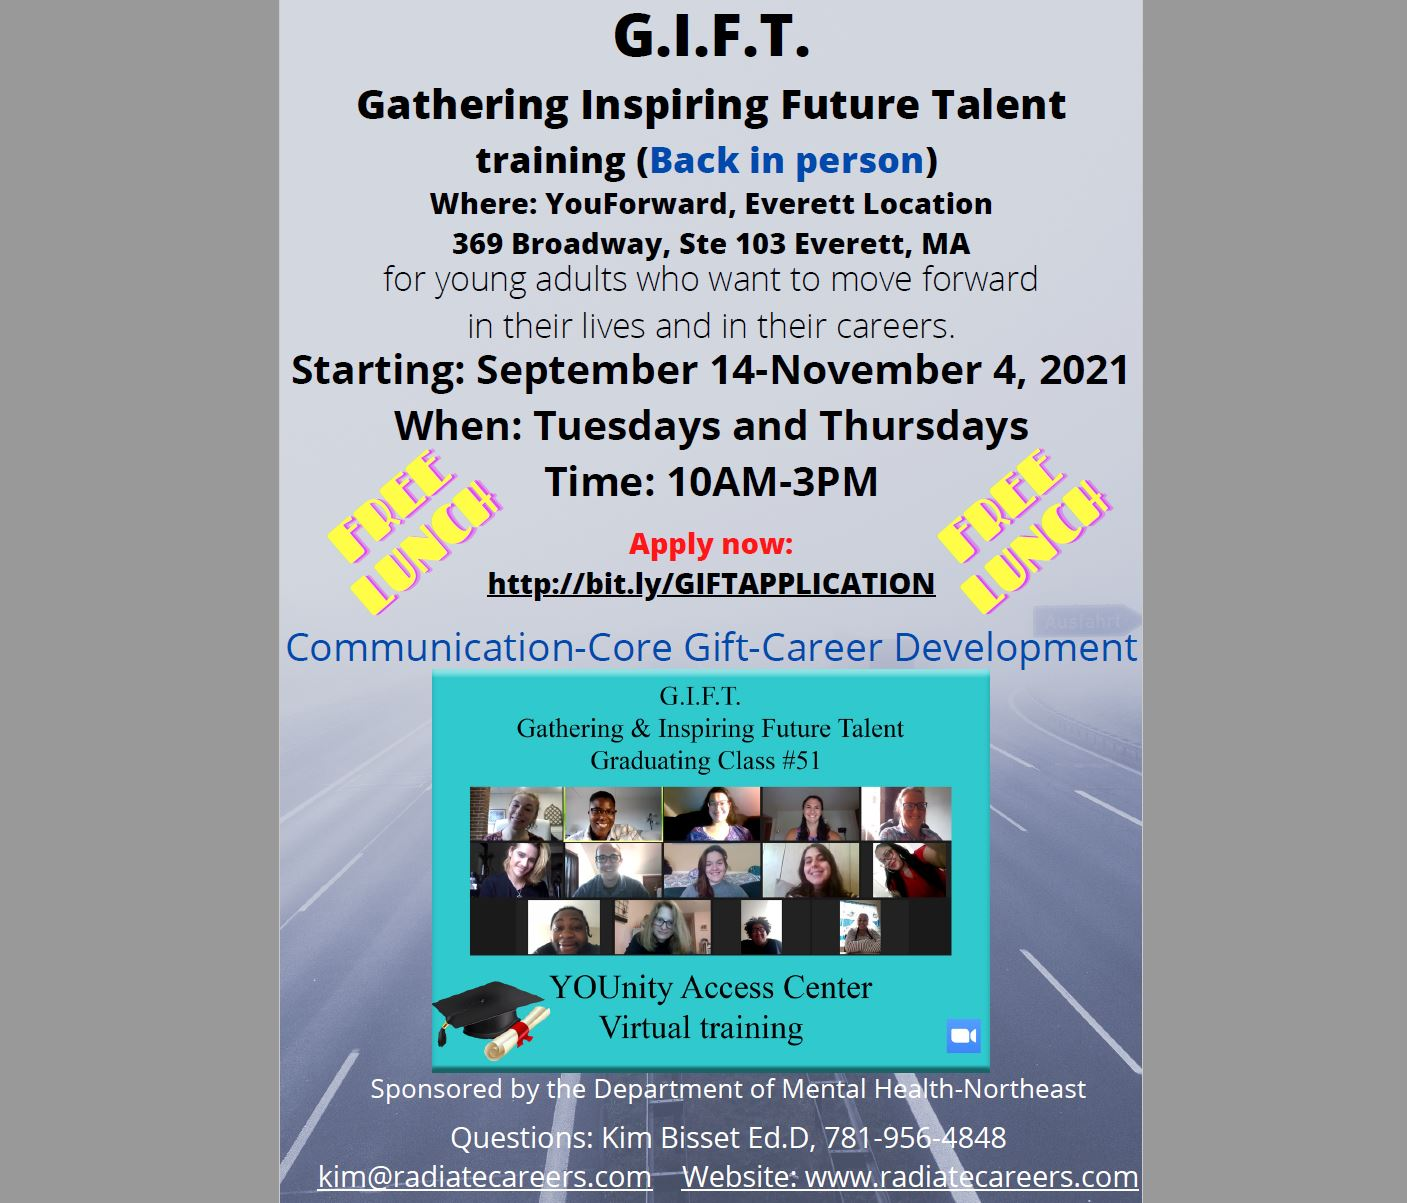 G.I.F.T. (Gathering & Inspiring Future Talent) Training: IN-PERSON at YouForward in Everett - Starting Sept.14, 2021